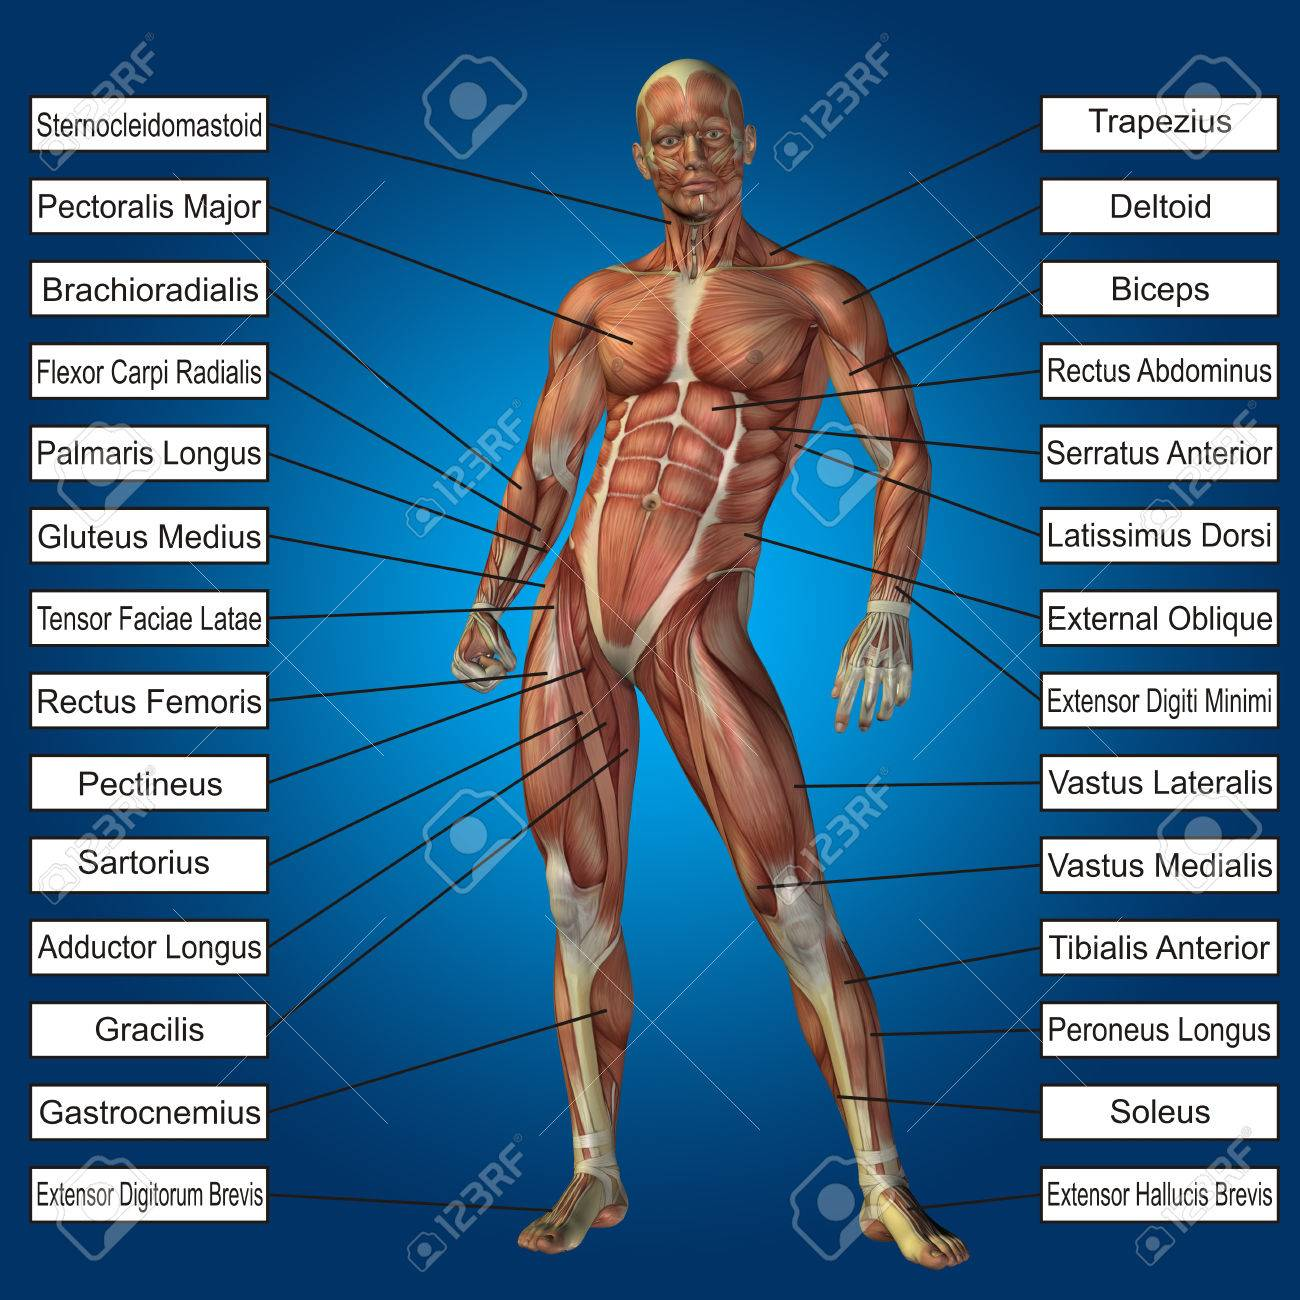 3d Human Male Anatomy With Muscles And Text On Blue Background Stock